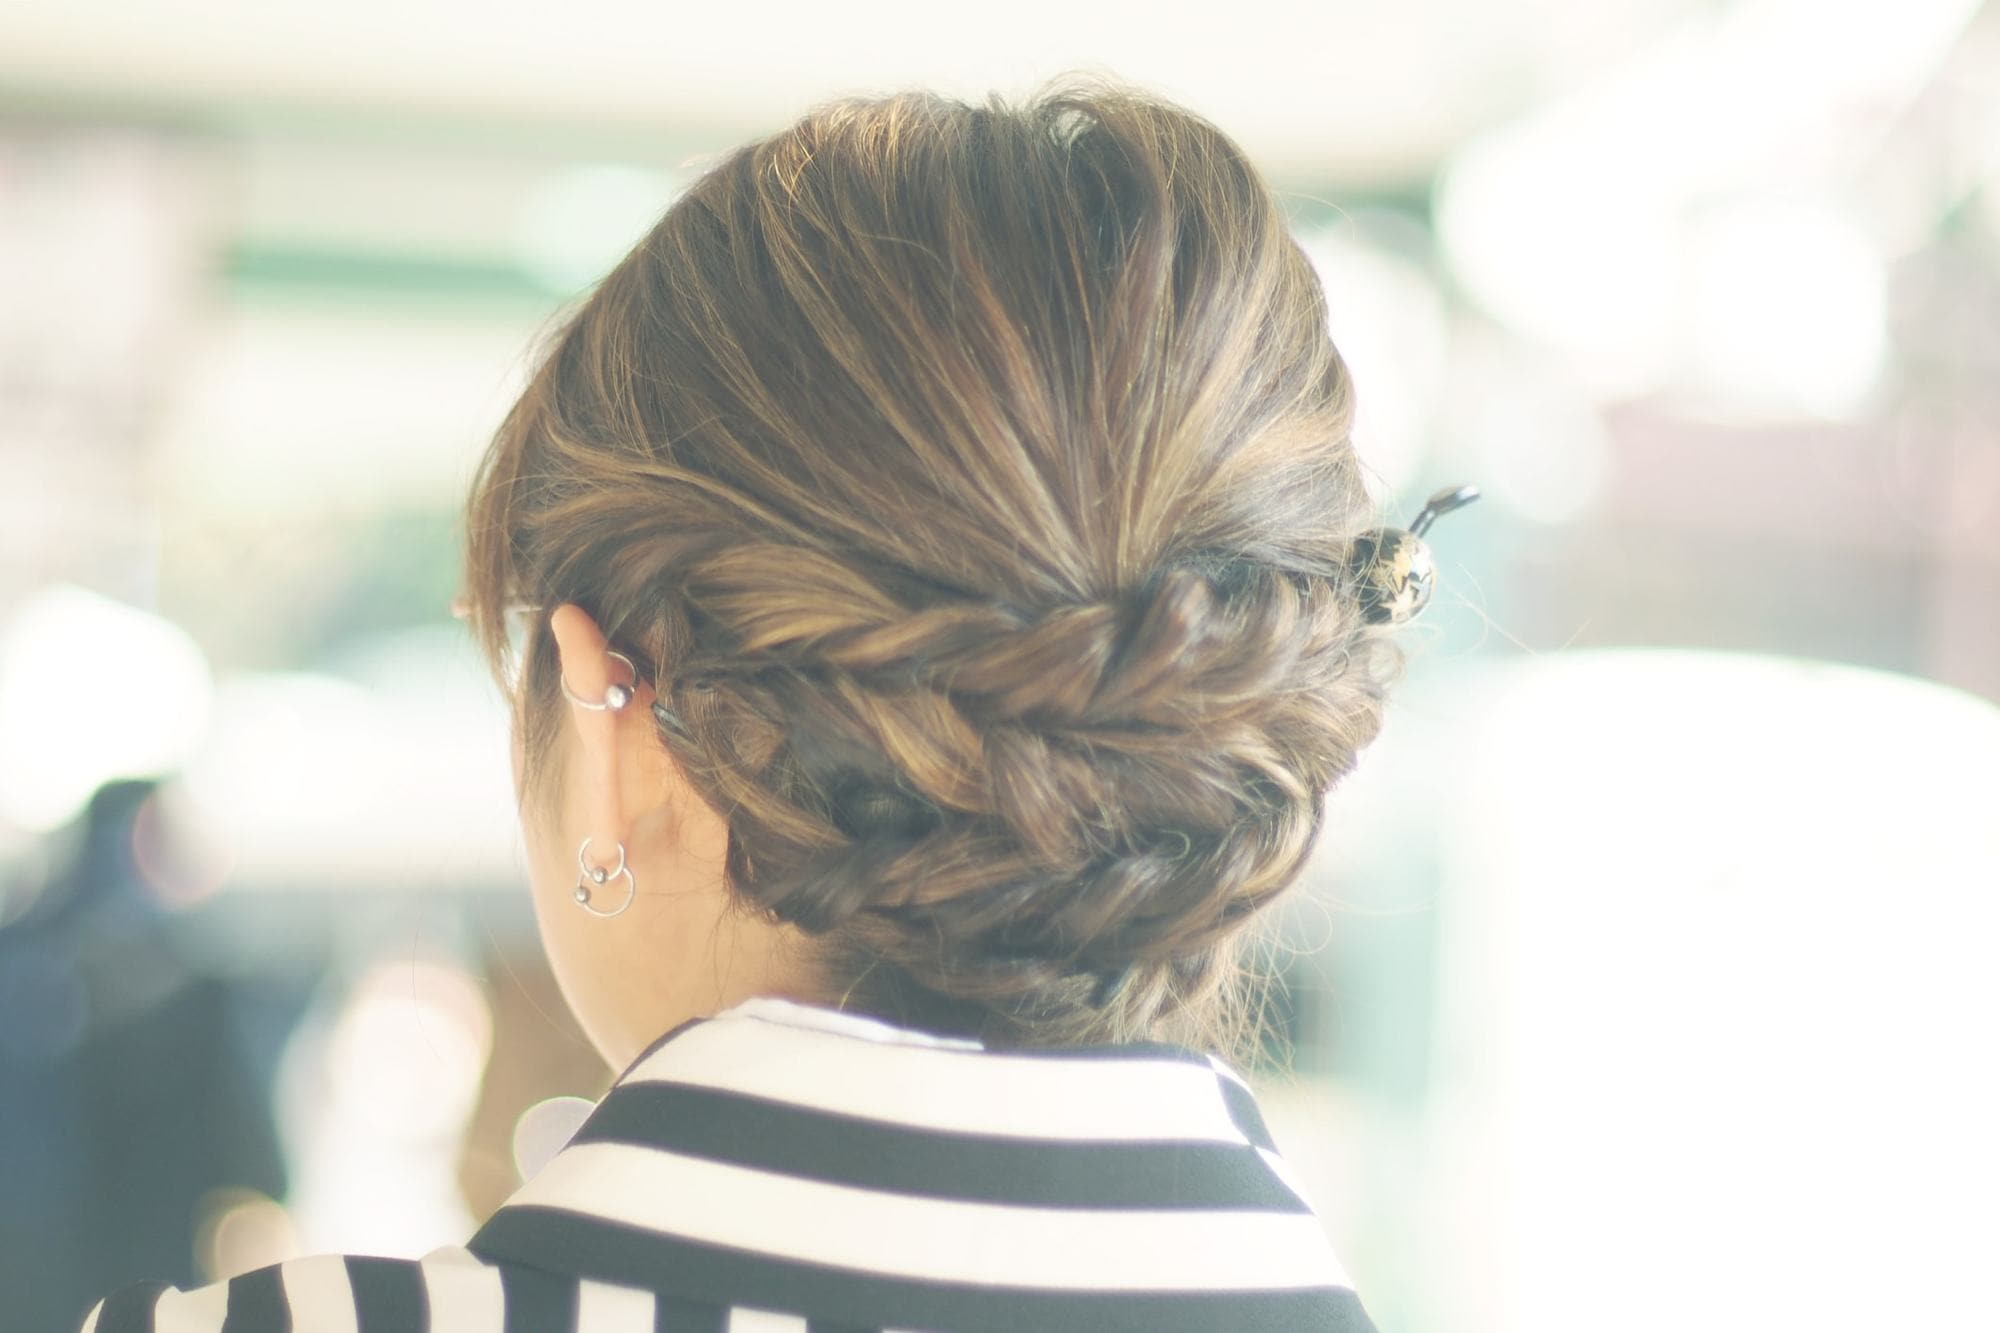 braided updo hair of a woman rear view